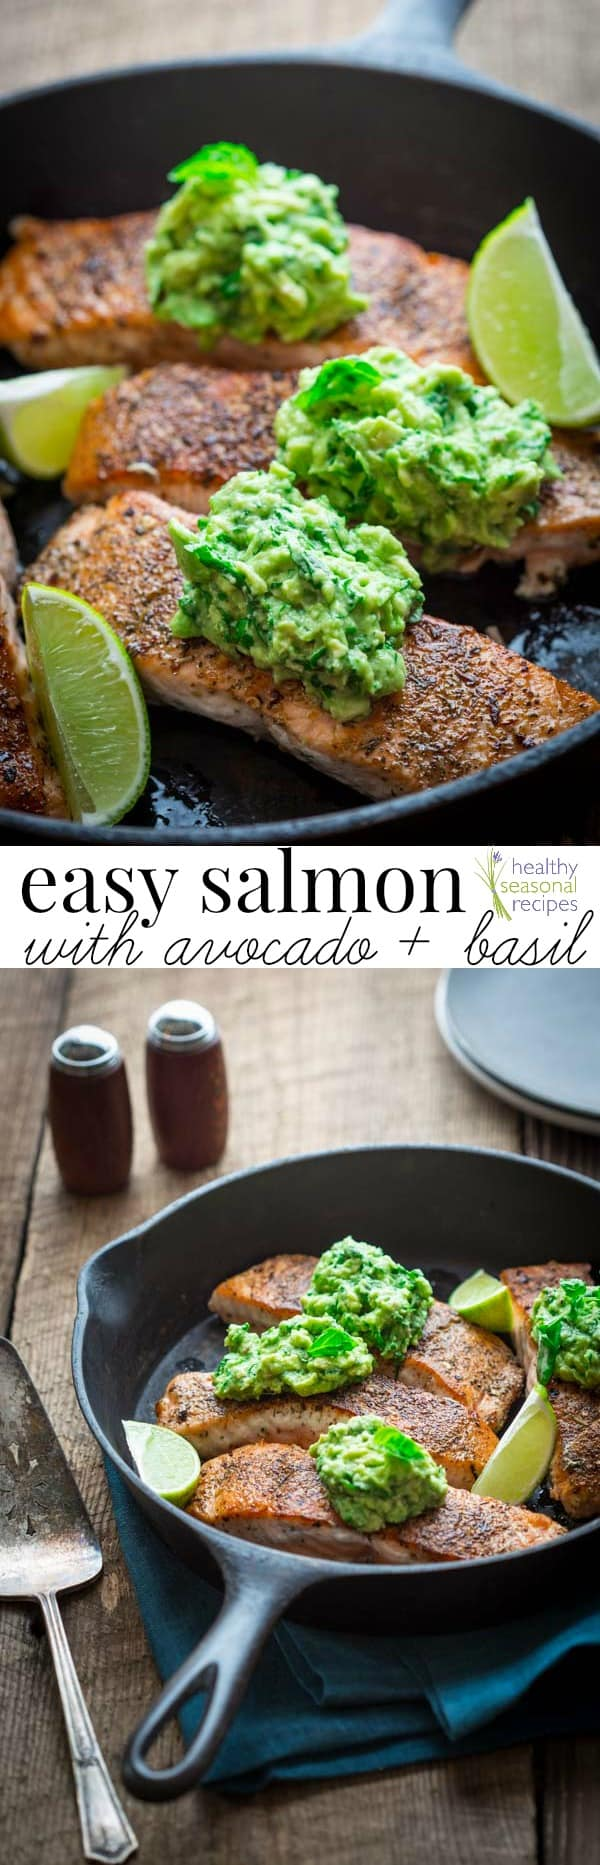 This skillet salmon comes together in 15 minutes and is naturally gluten-free, low-carb and paleo. Top it off with avocado, lime, basil, and salt and enjoy! #salmon #skillet #avocado #easy #healthy #fast #15minutes